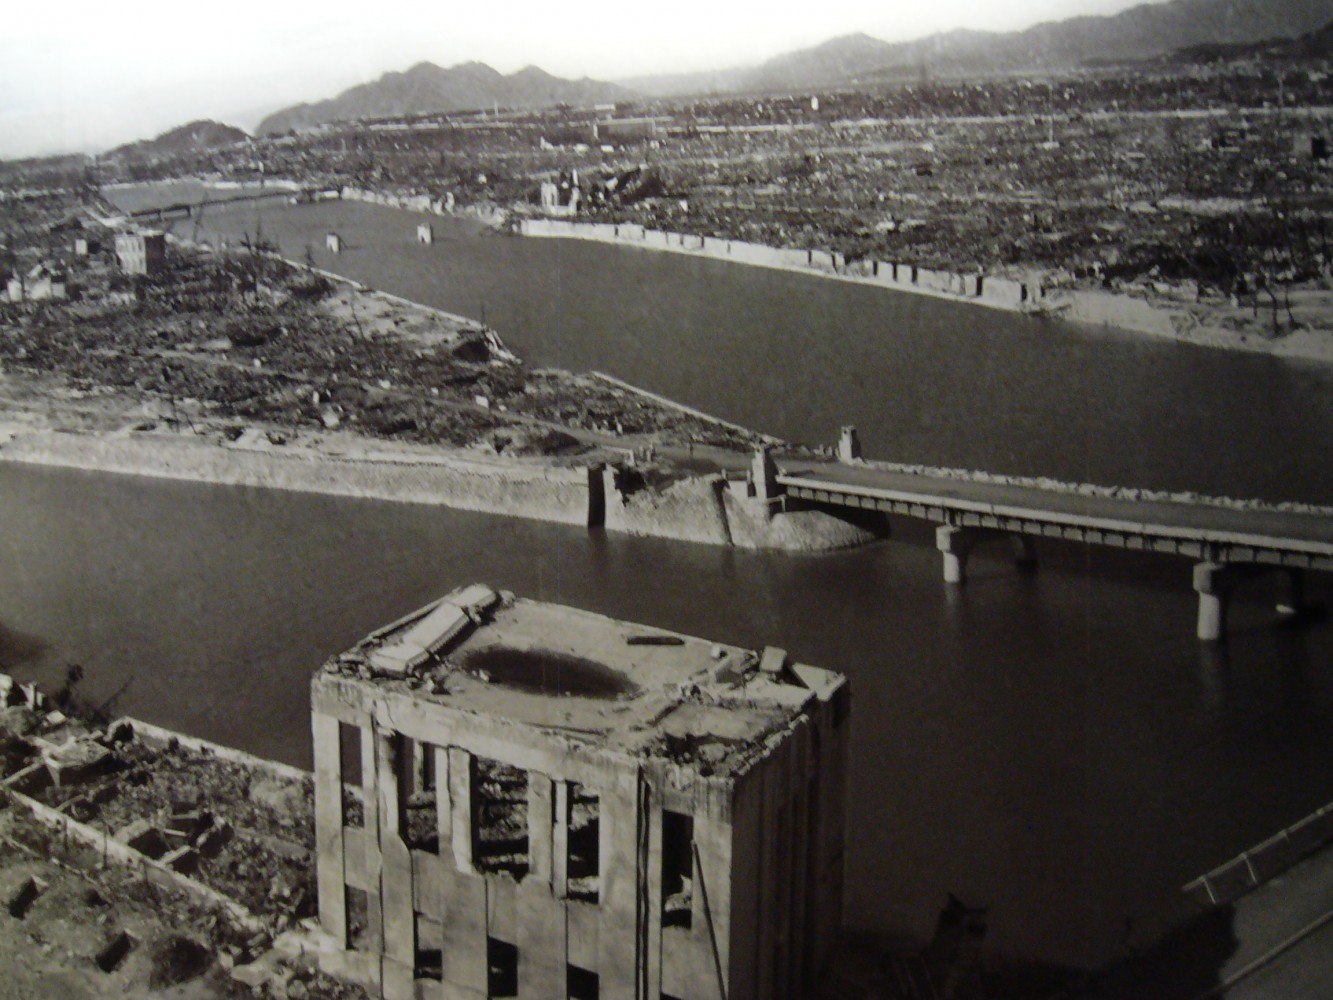 View from air after the bomb was dropped